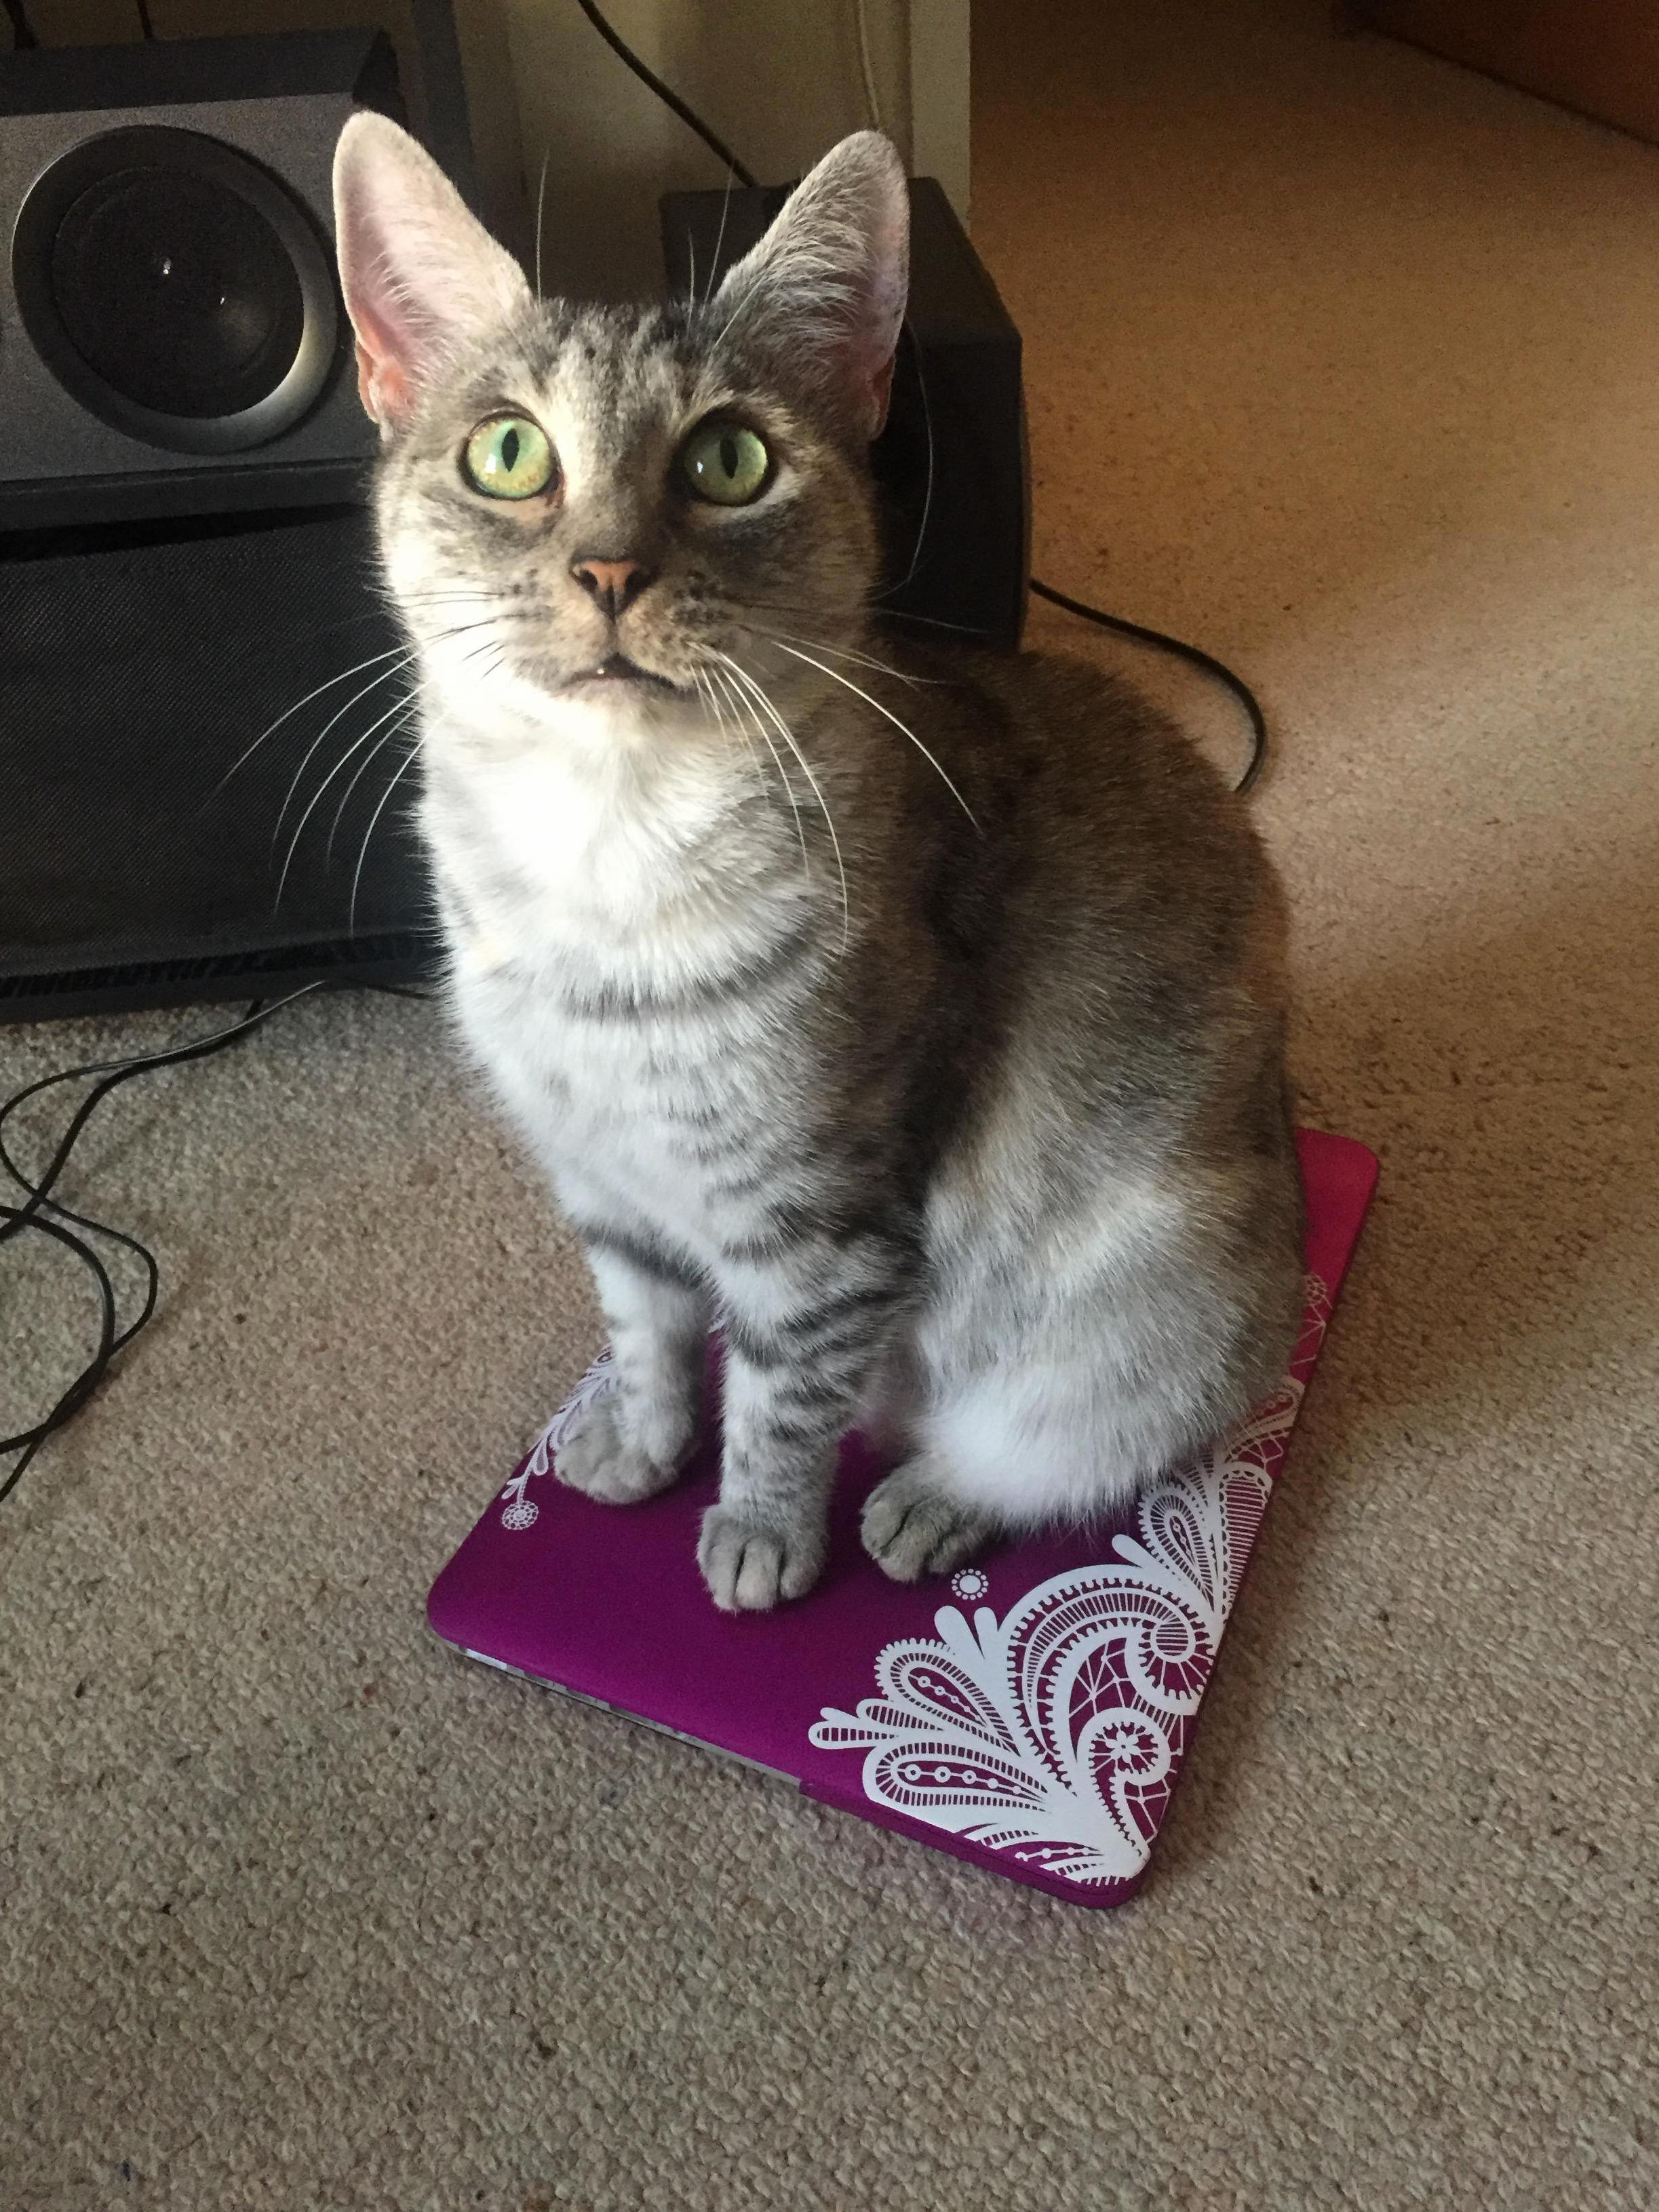 No laptop for you until you give me some pats